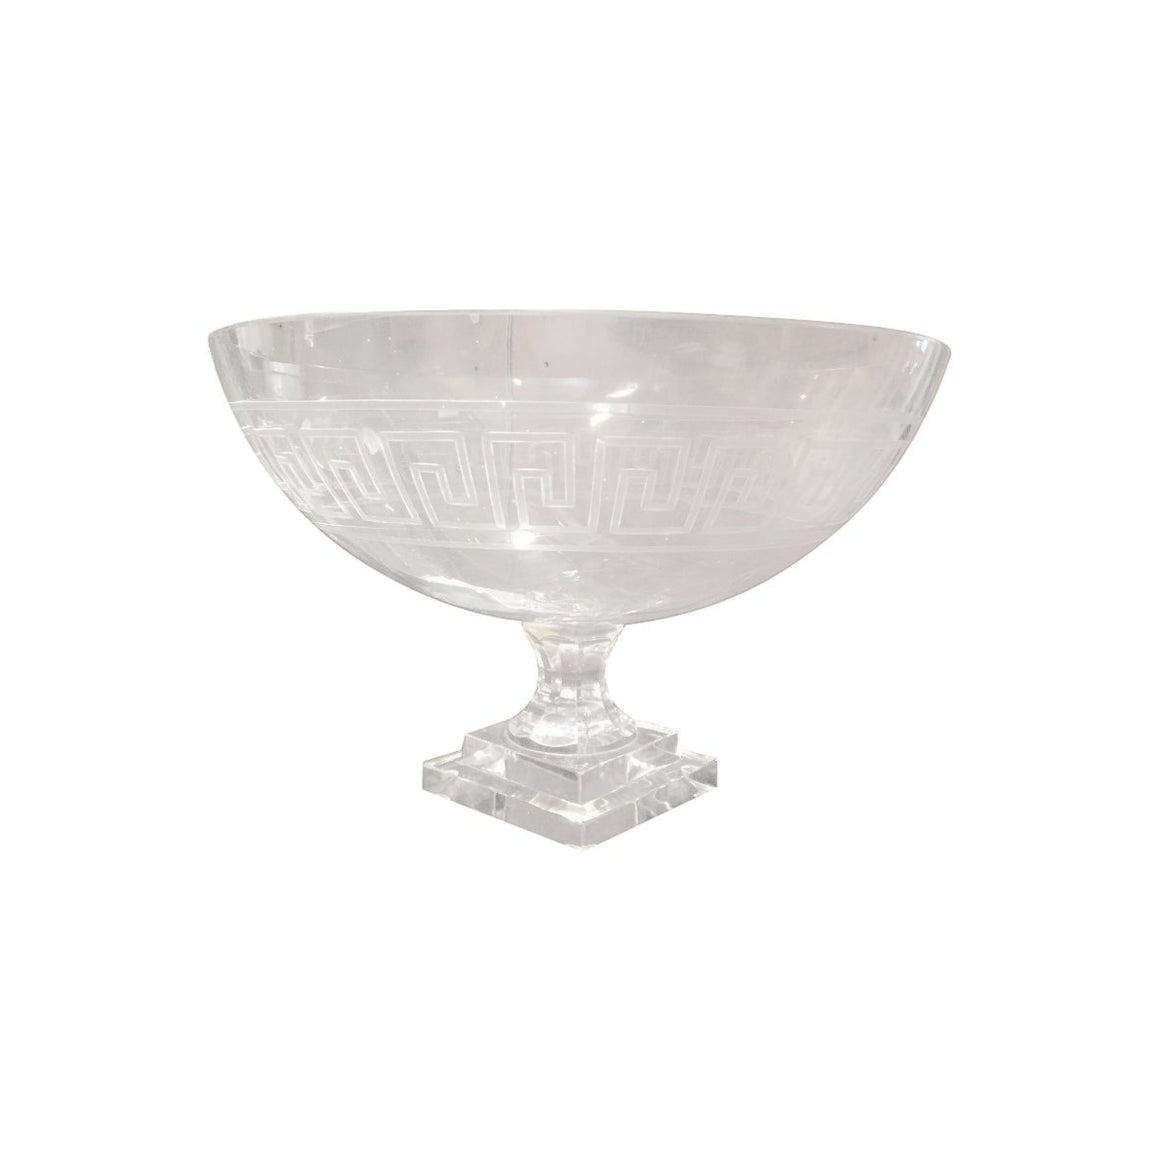 Greek Key Pedestal Bowl